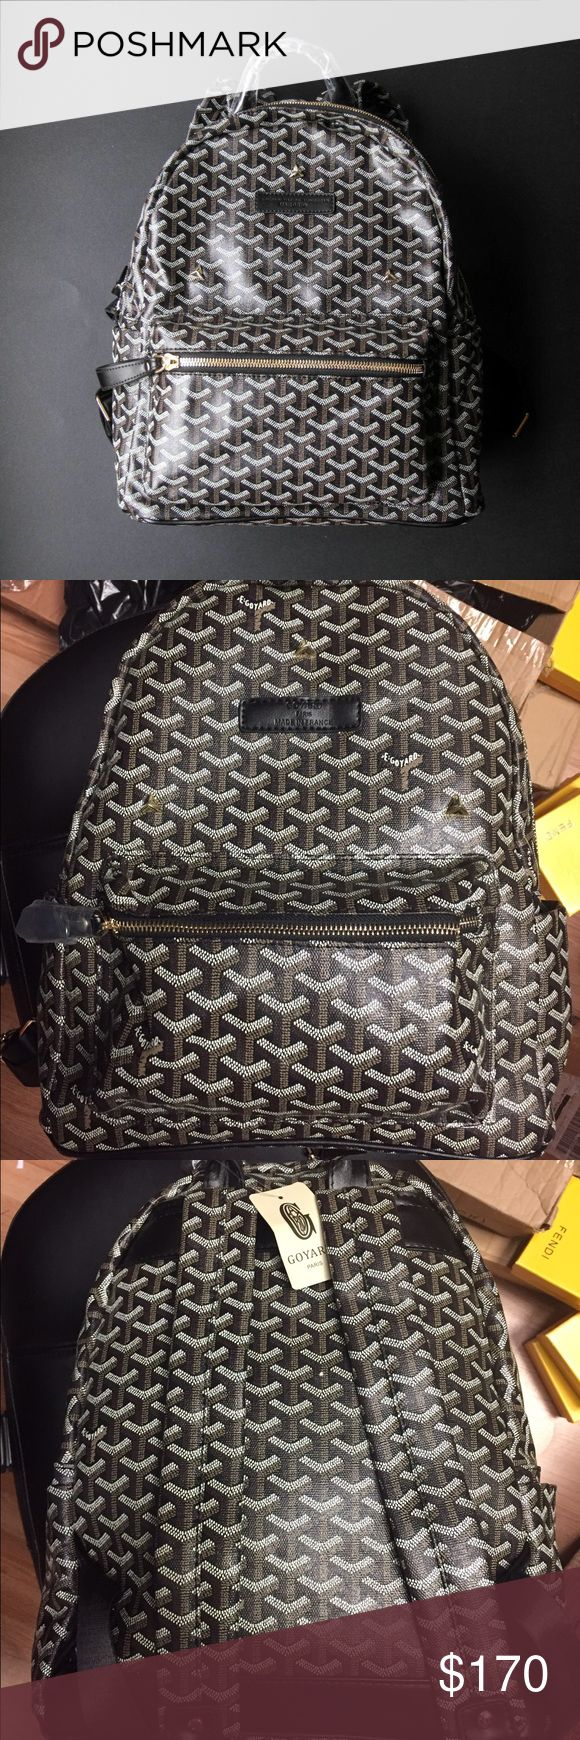 Goyard Bookbag NOT auth. Does come with tags & dustbag. Leather material . Medium sized. I also offer discounts through ️️ Bags Backpacks